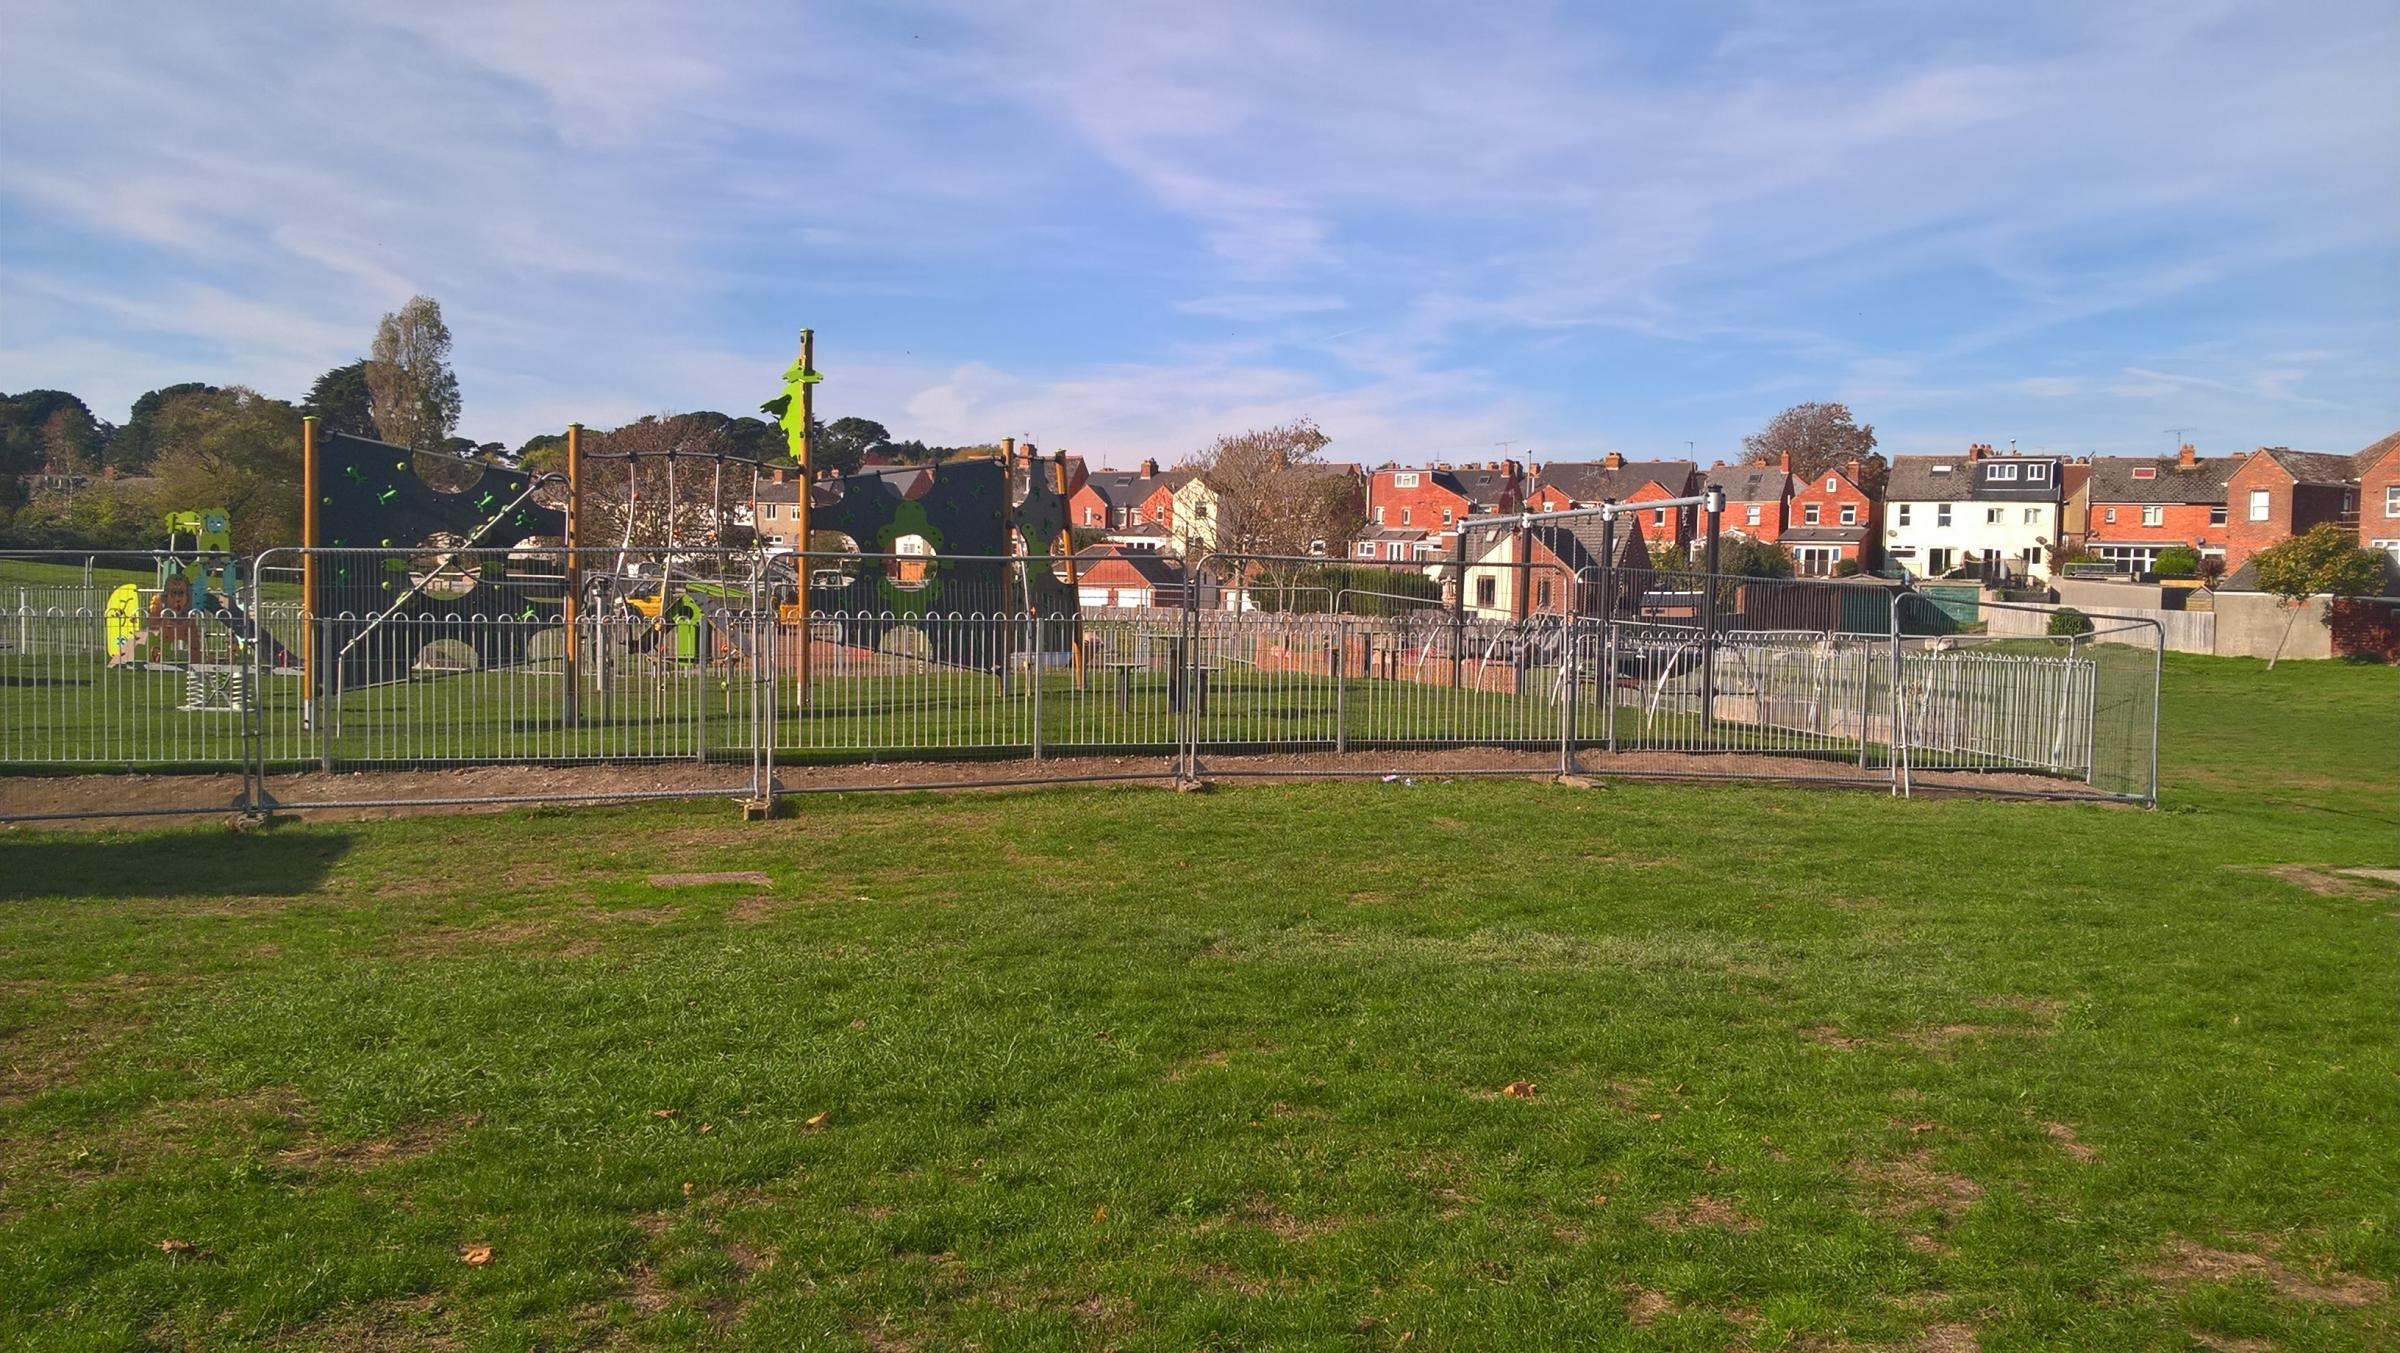 The new playpark on The Marsh